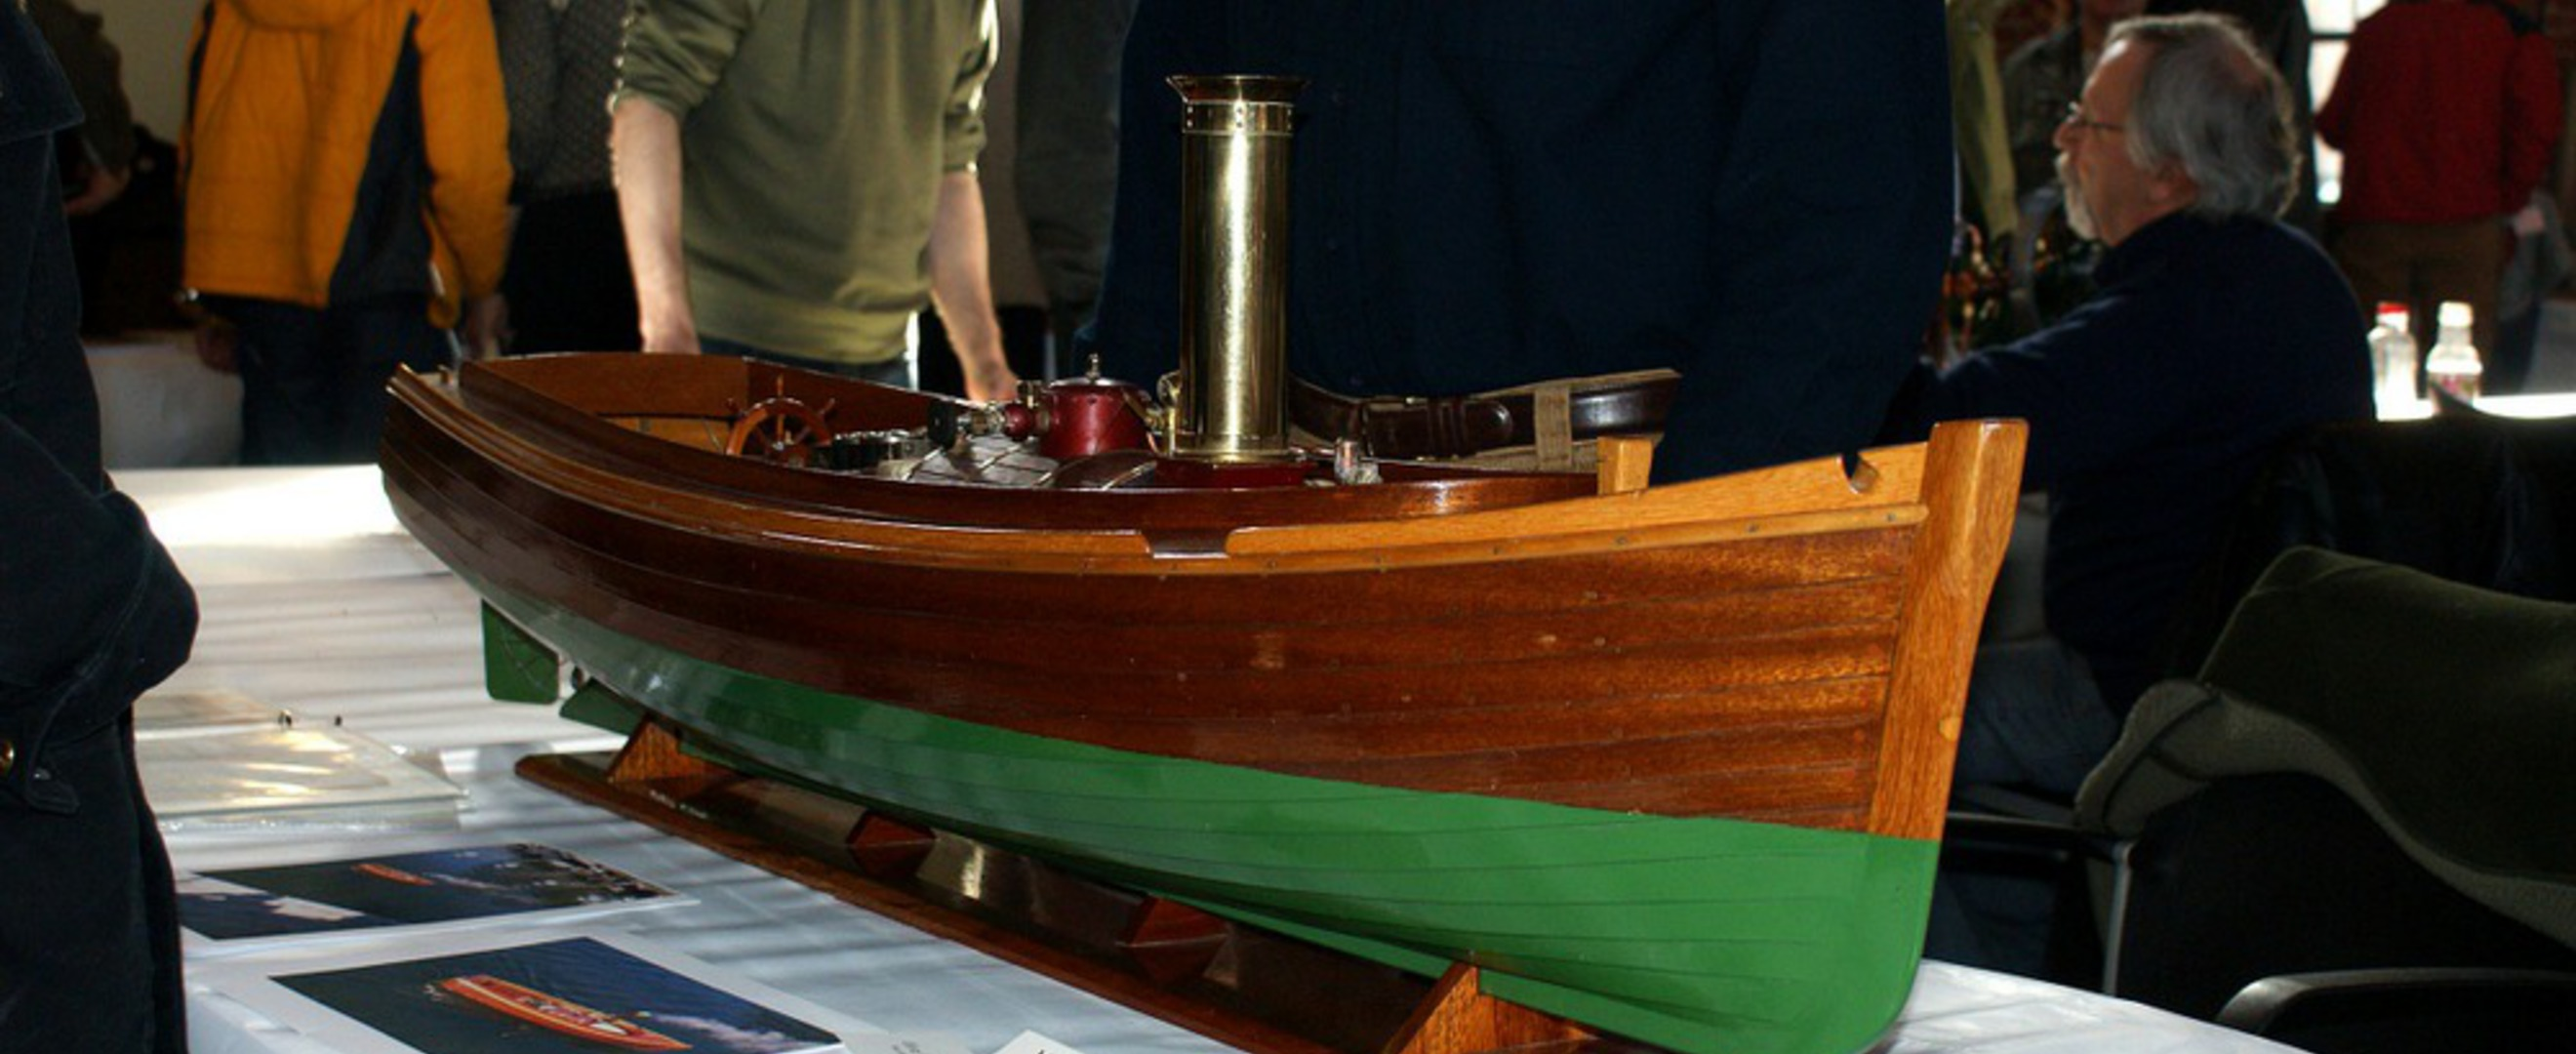 A model steamboat